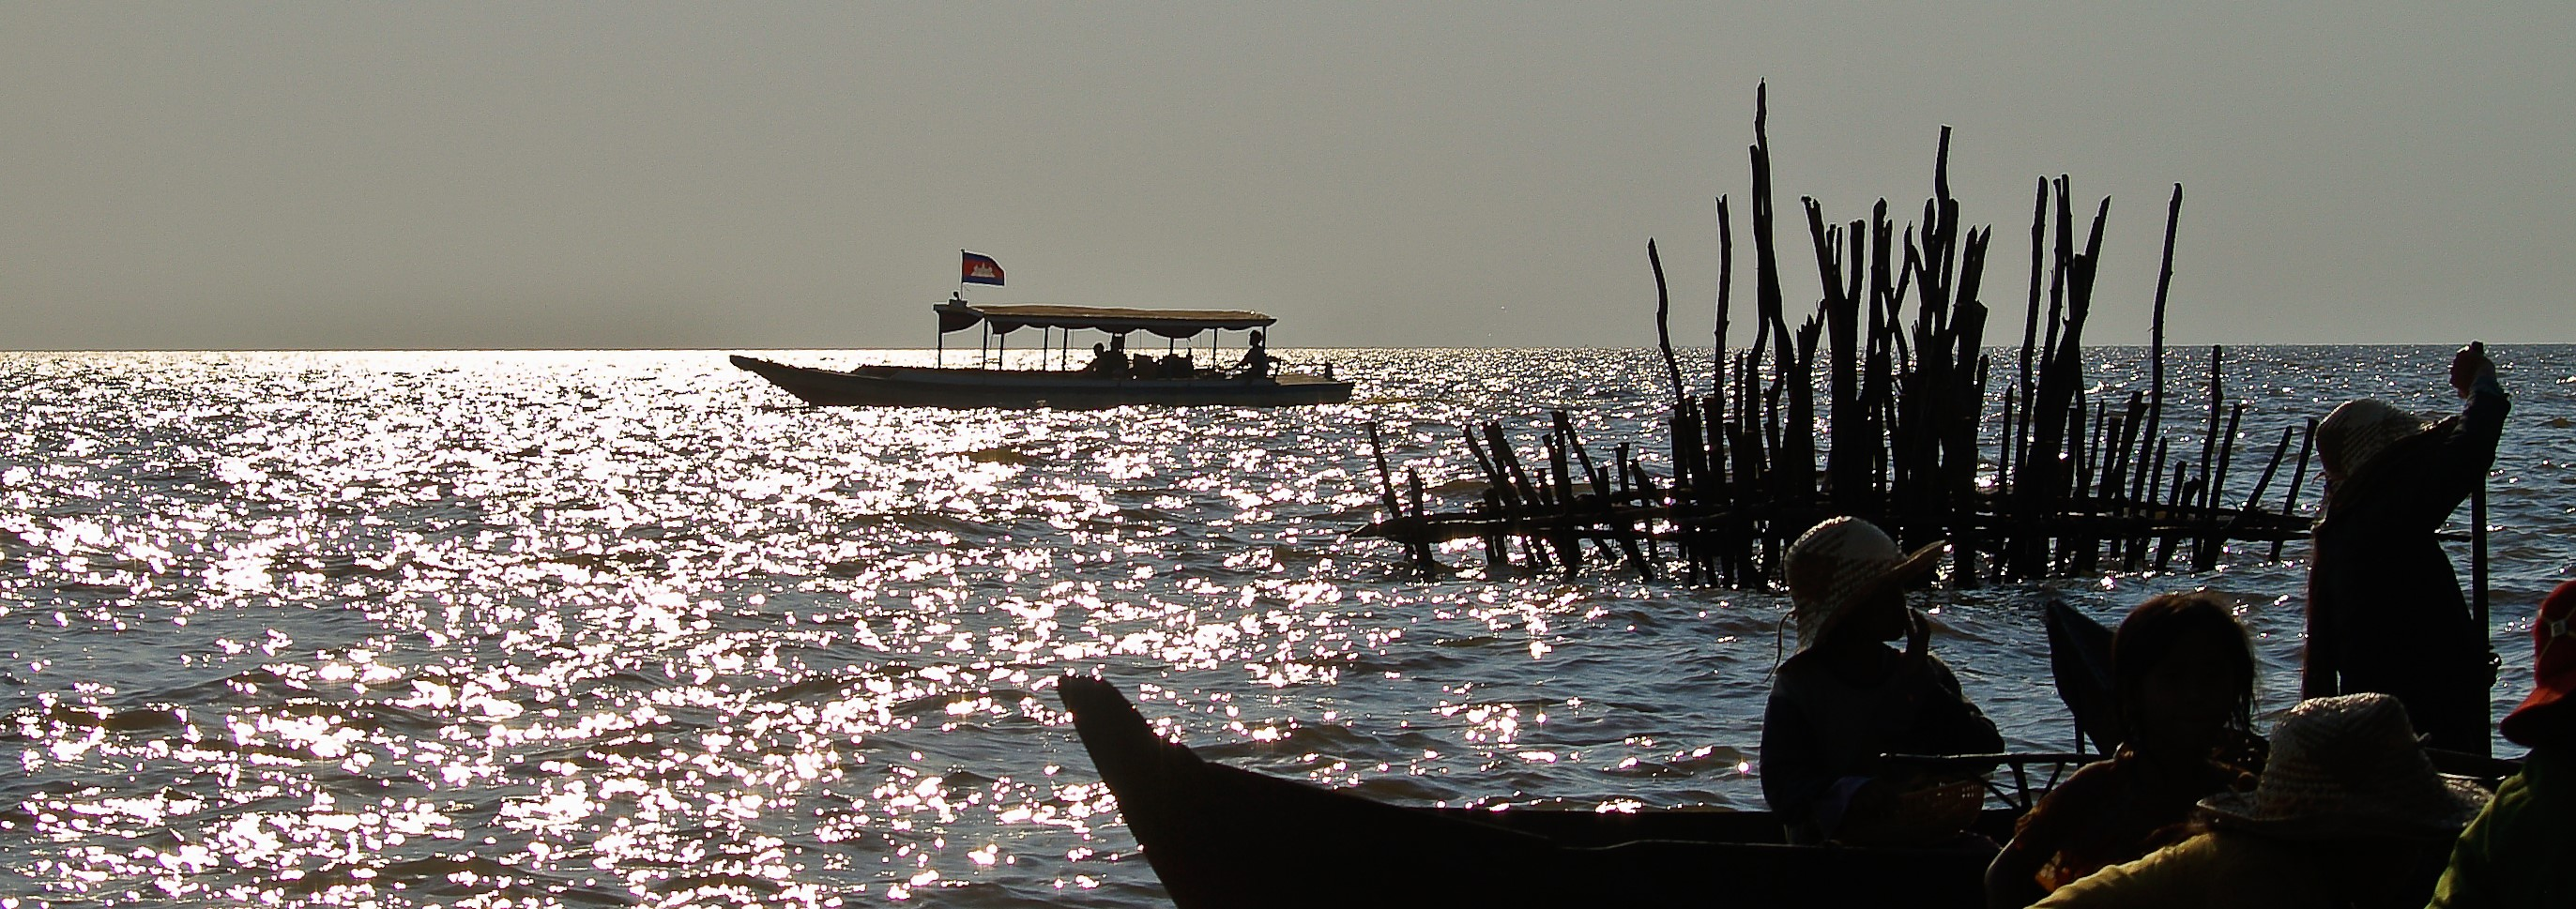 Boats on Tonle Sap Lake, Cambodia (Photo: Flickr/Anguskirk)